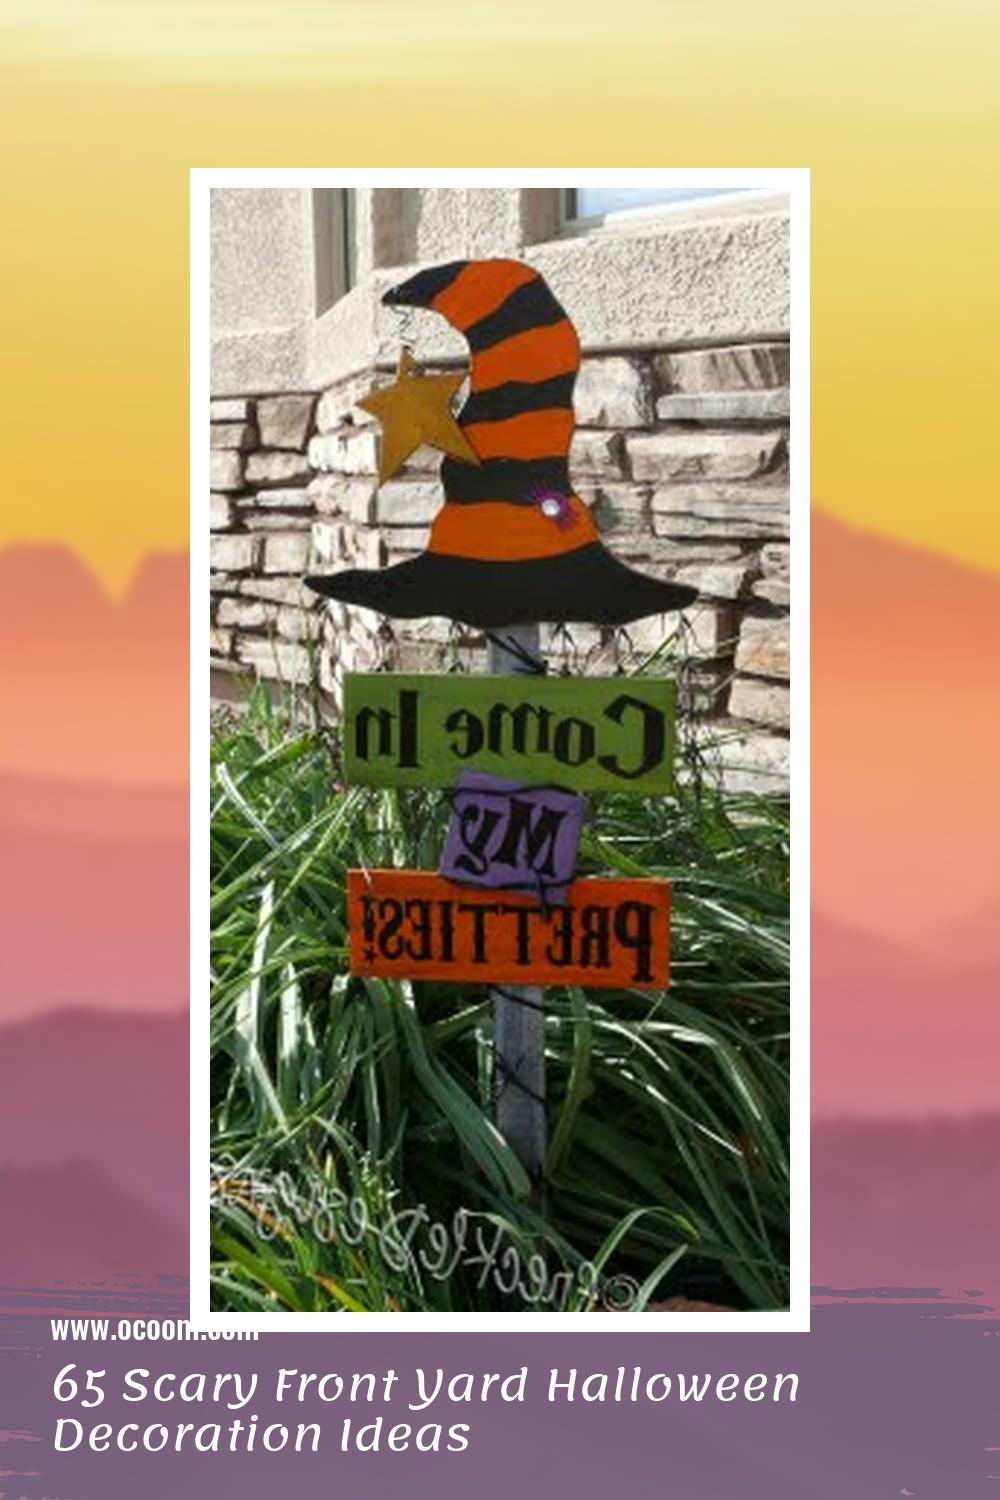 65 Scary Front Yard Halloween Decoration Ideas 25